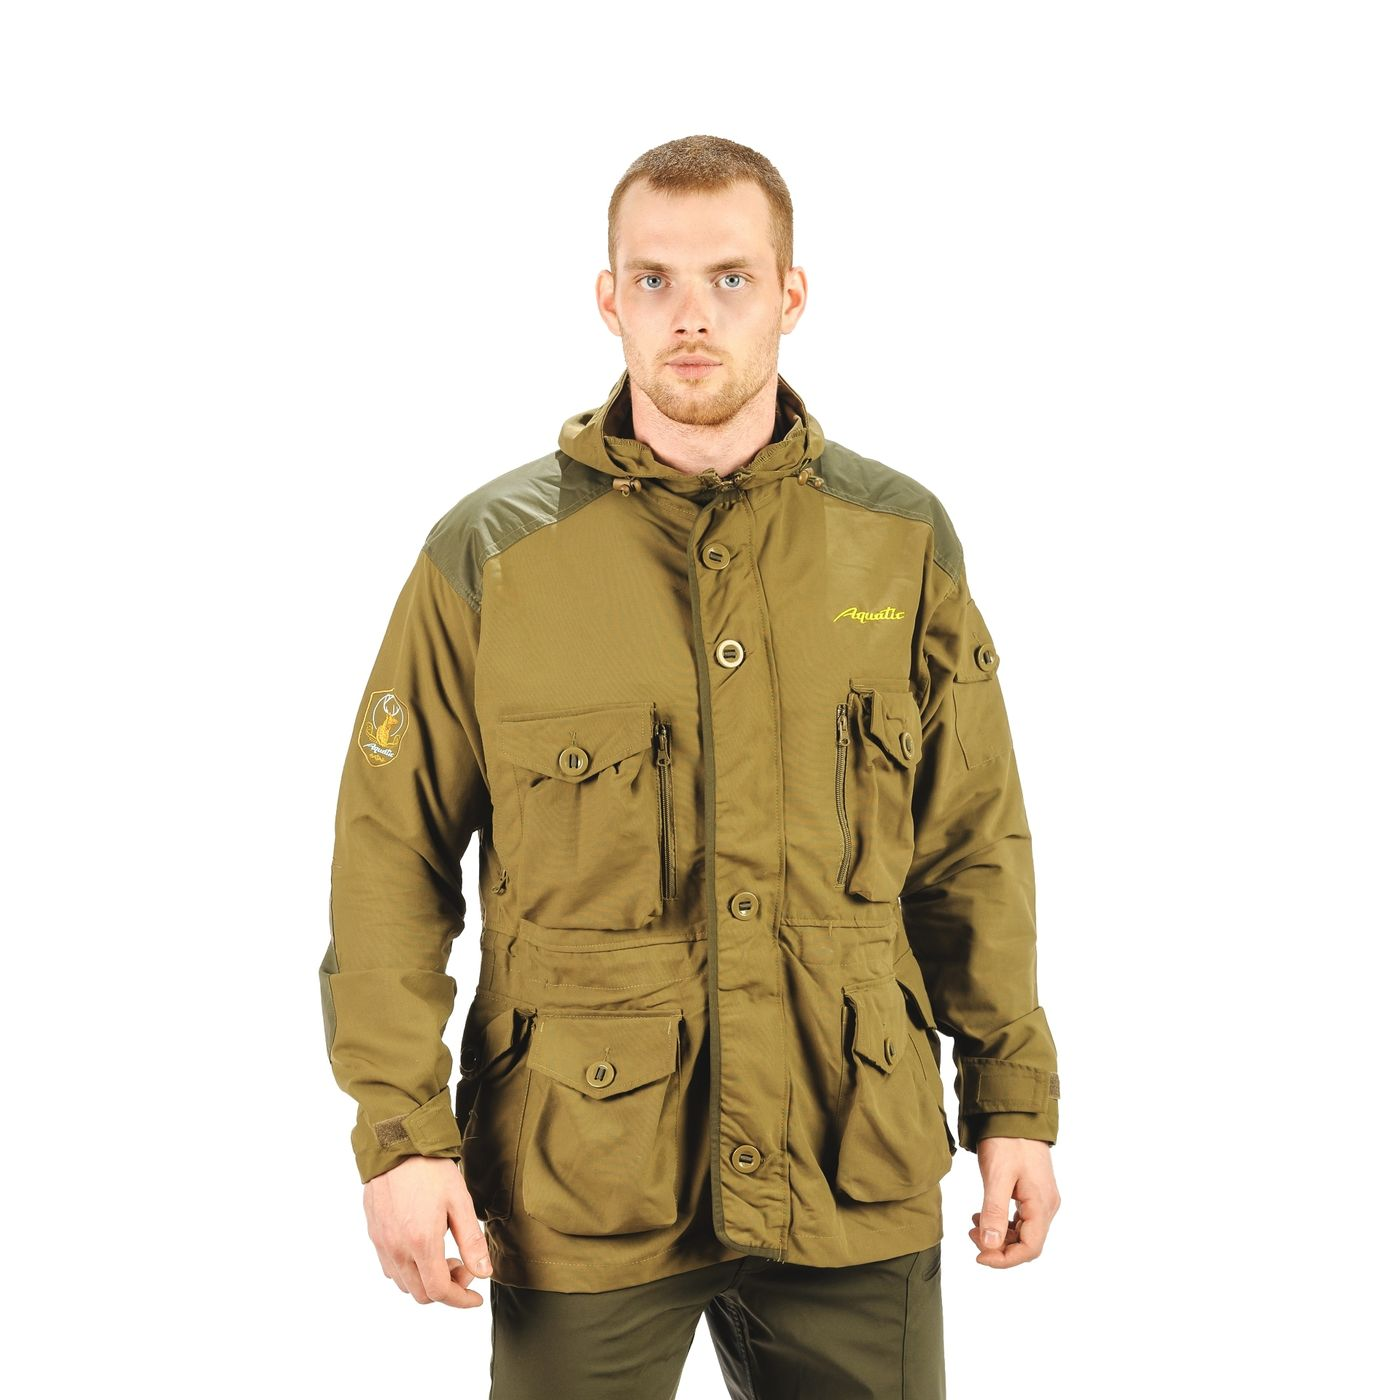 Hunter Jacket Aquatic Ko-01 Ko-01 XL